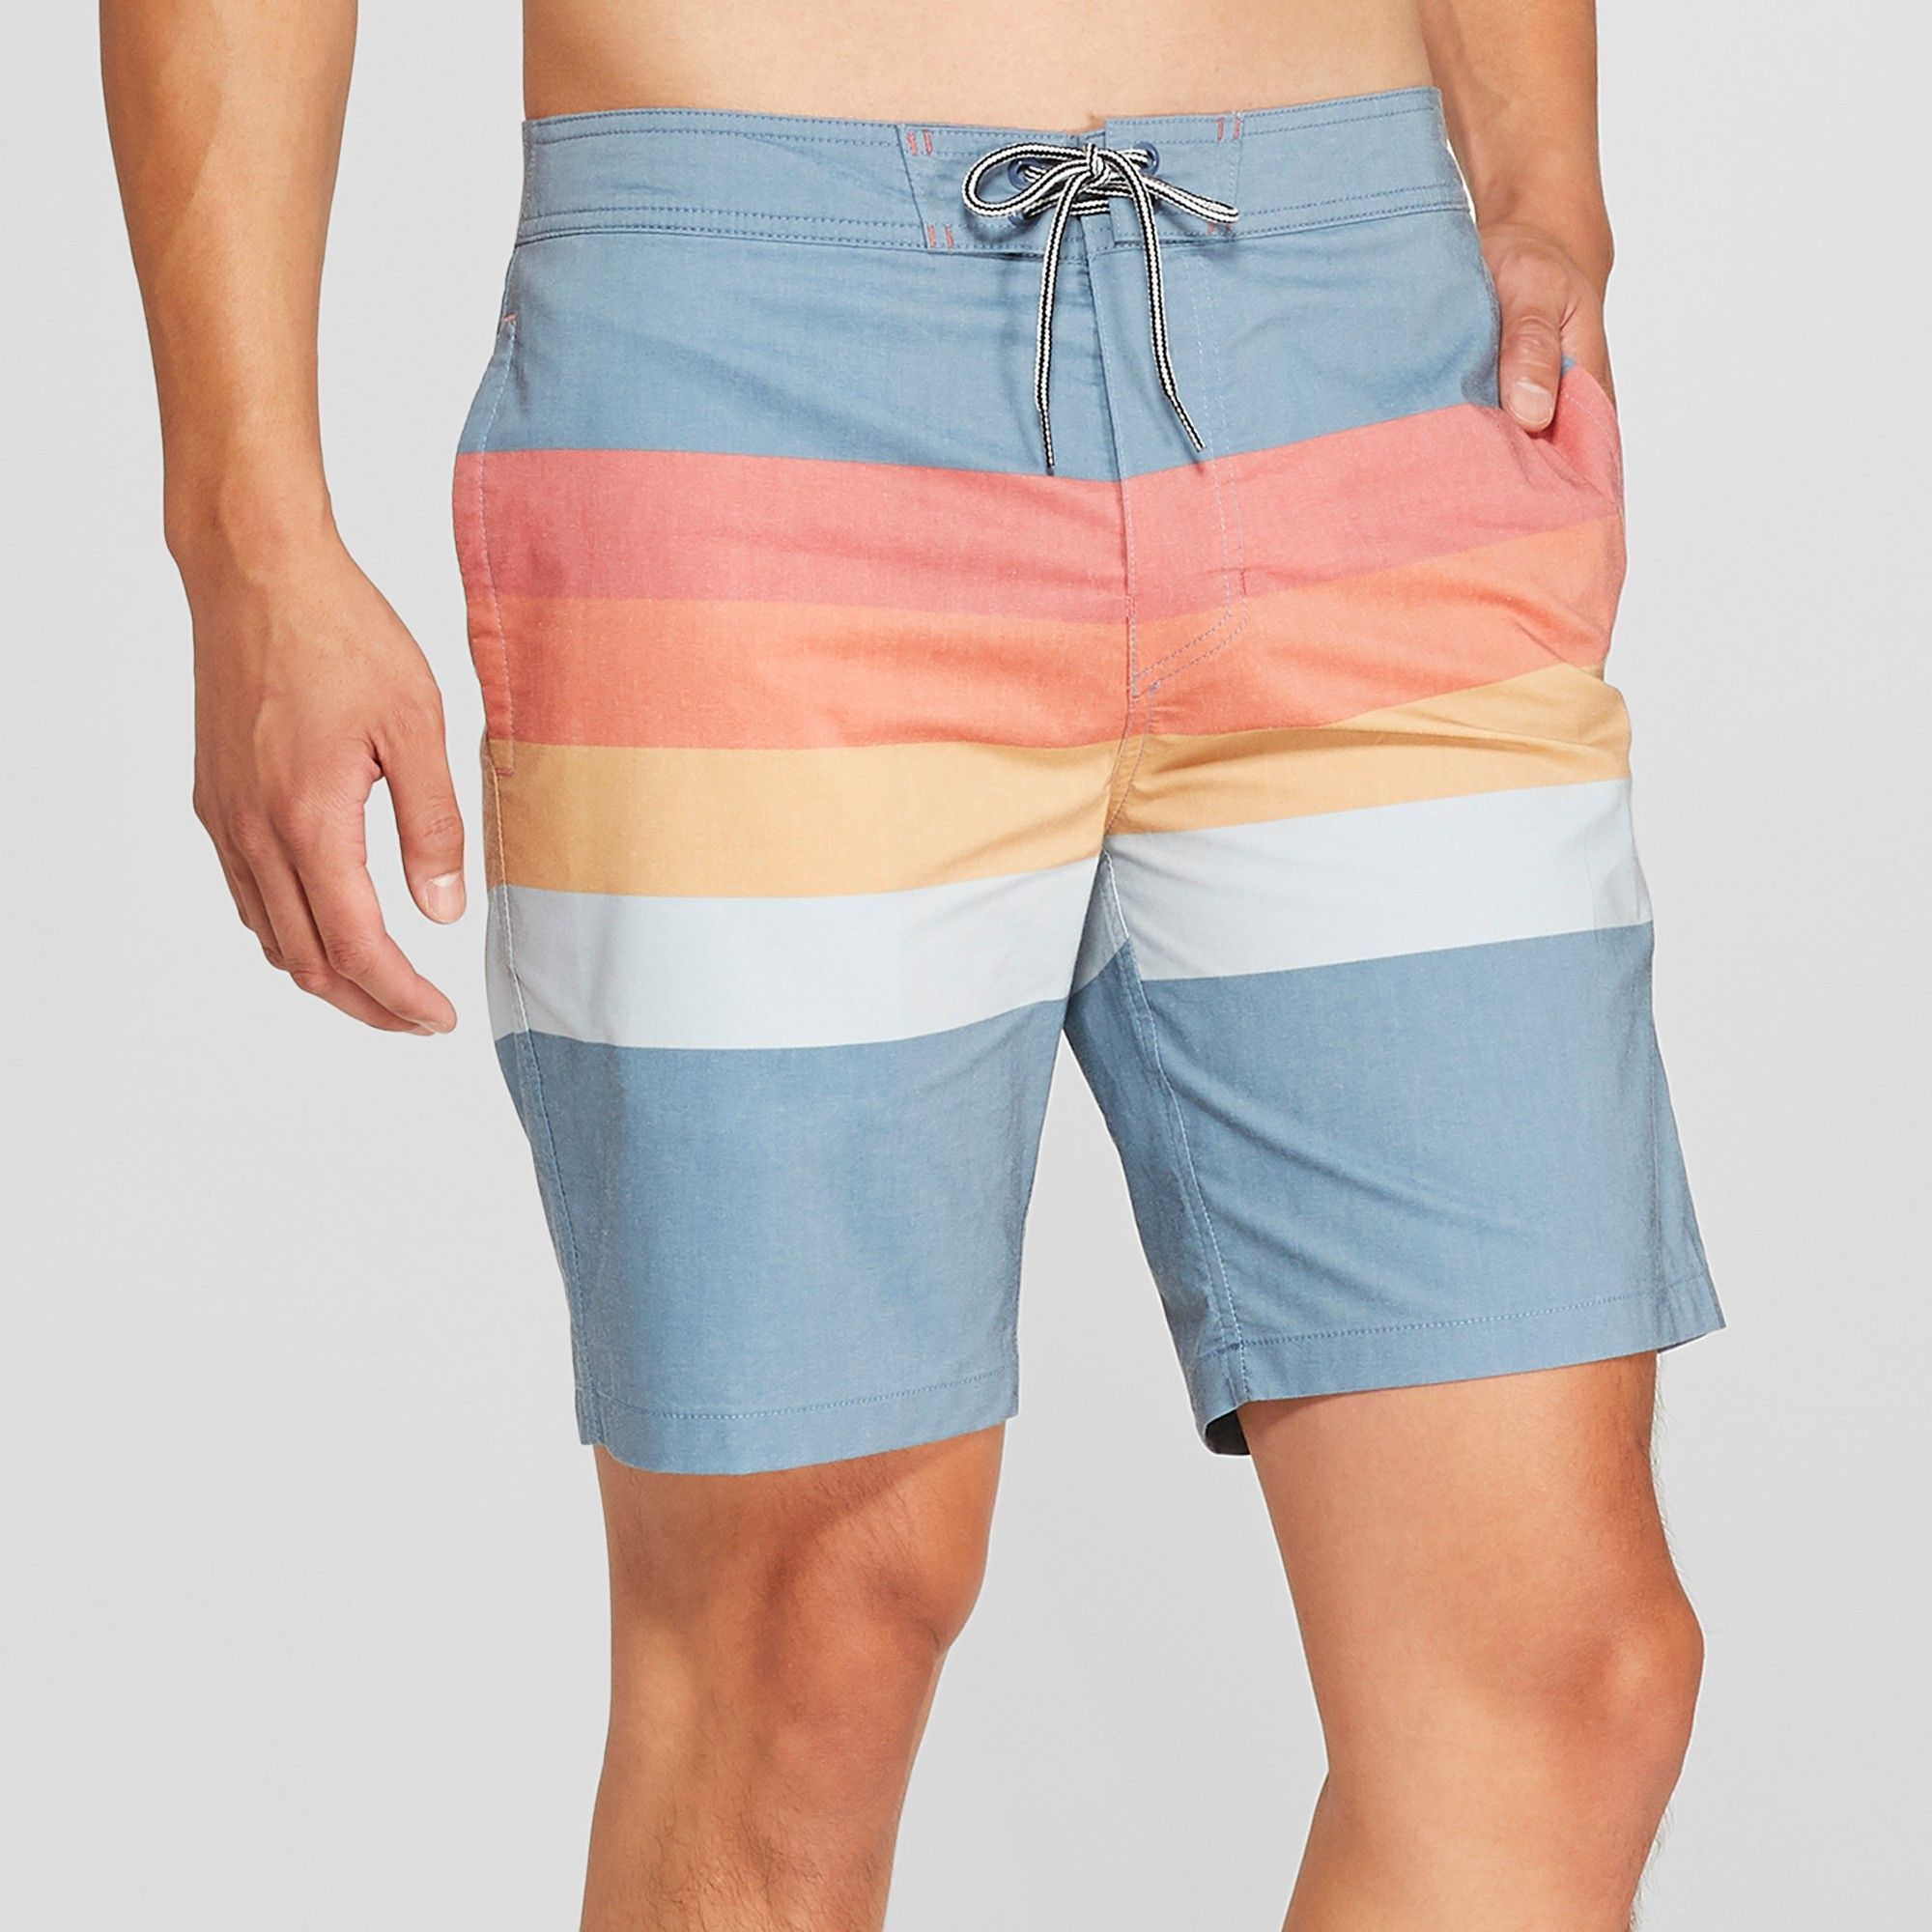 2564ab8ace Men's 8.5 Striped Bands Board Shorts - Goodfellow & Co Cadet Blue 30 ...